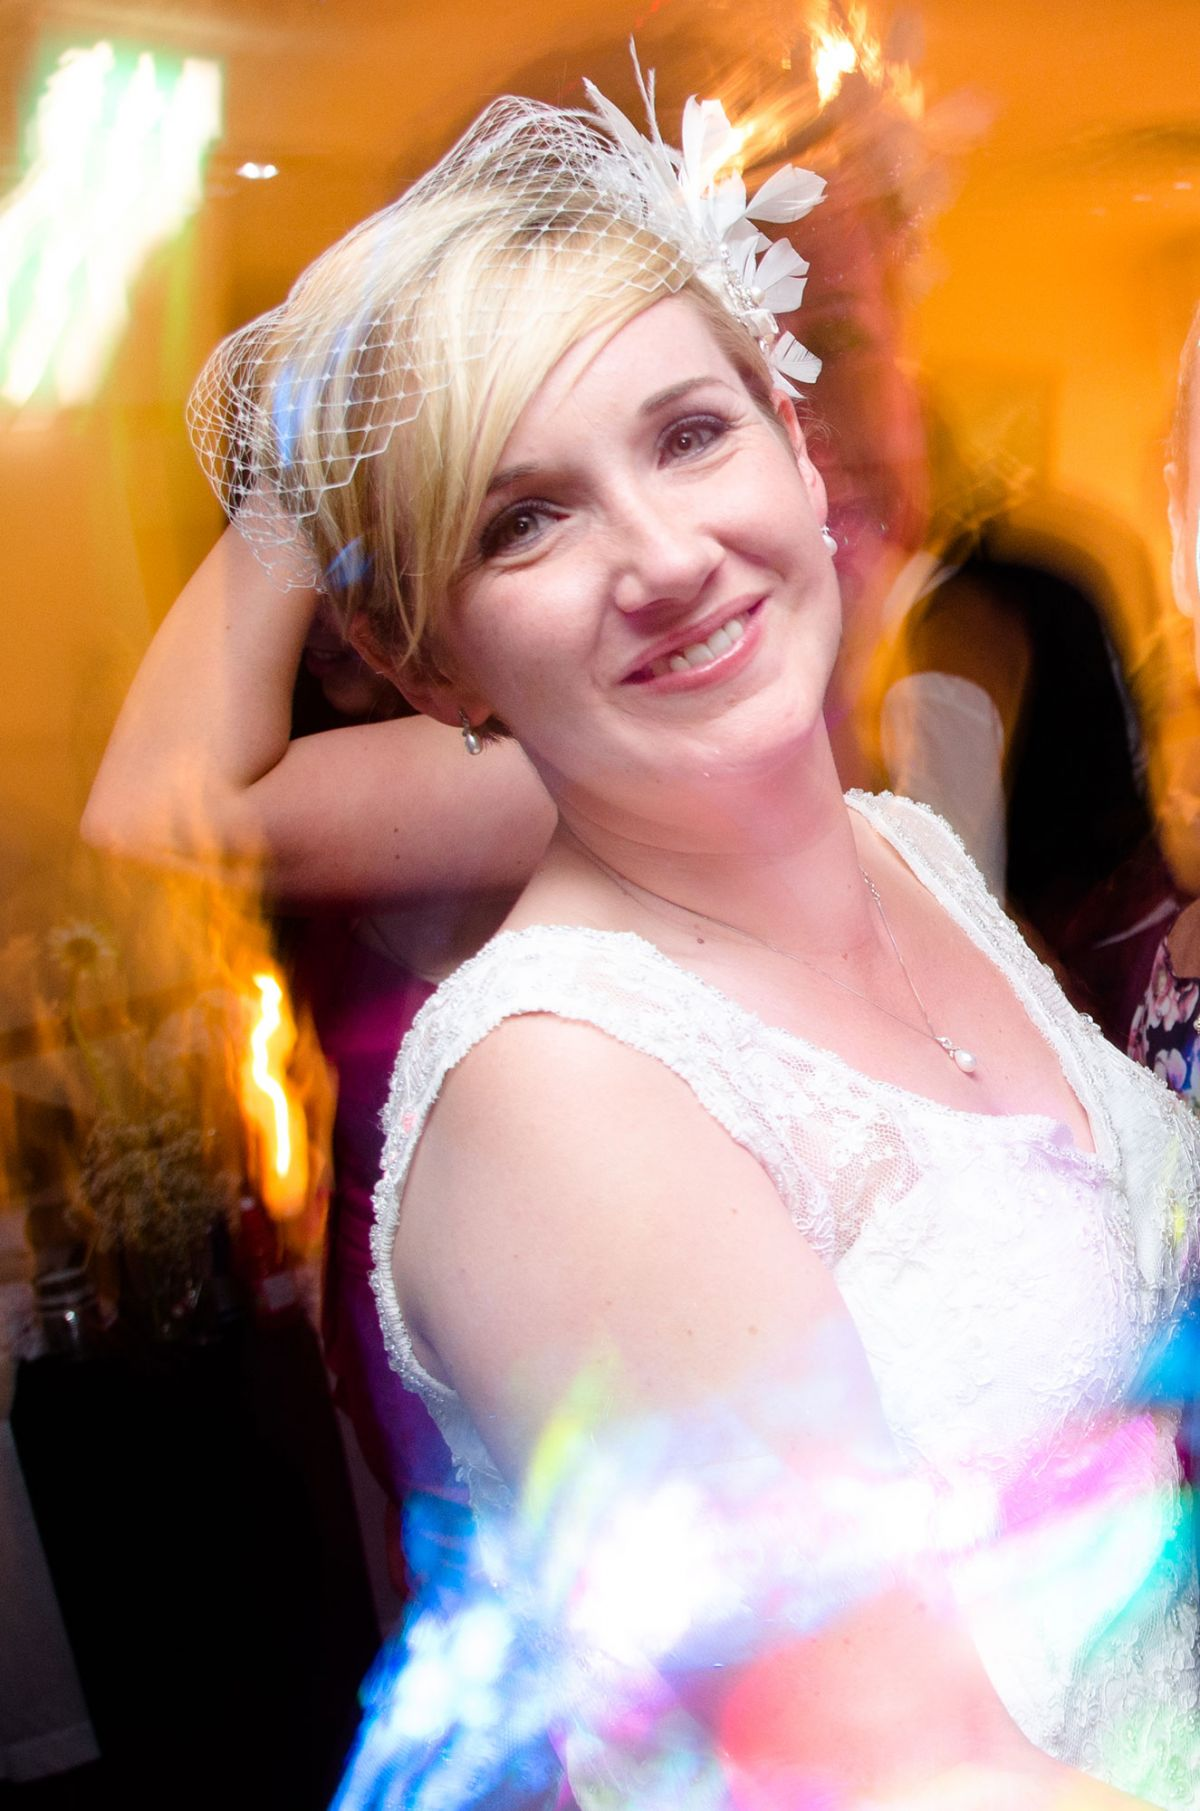 Wedding photography in Surrey, Sussex and London by Surrey Event Photography